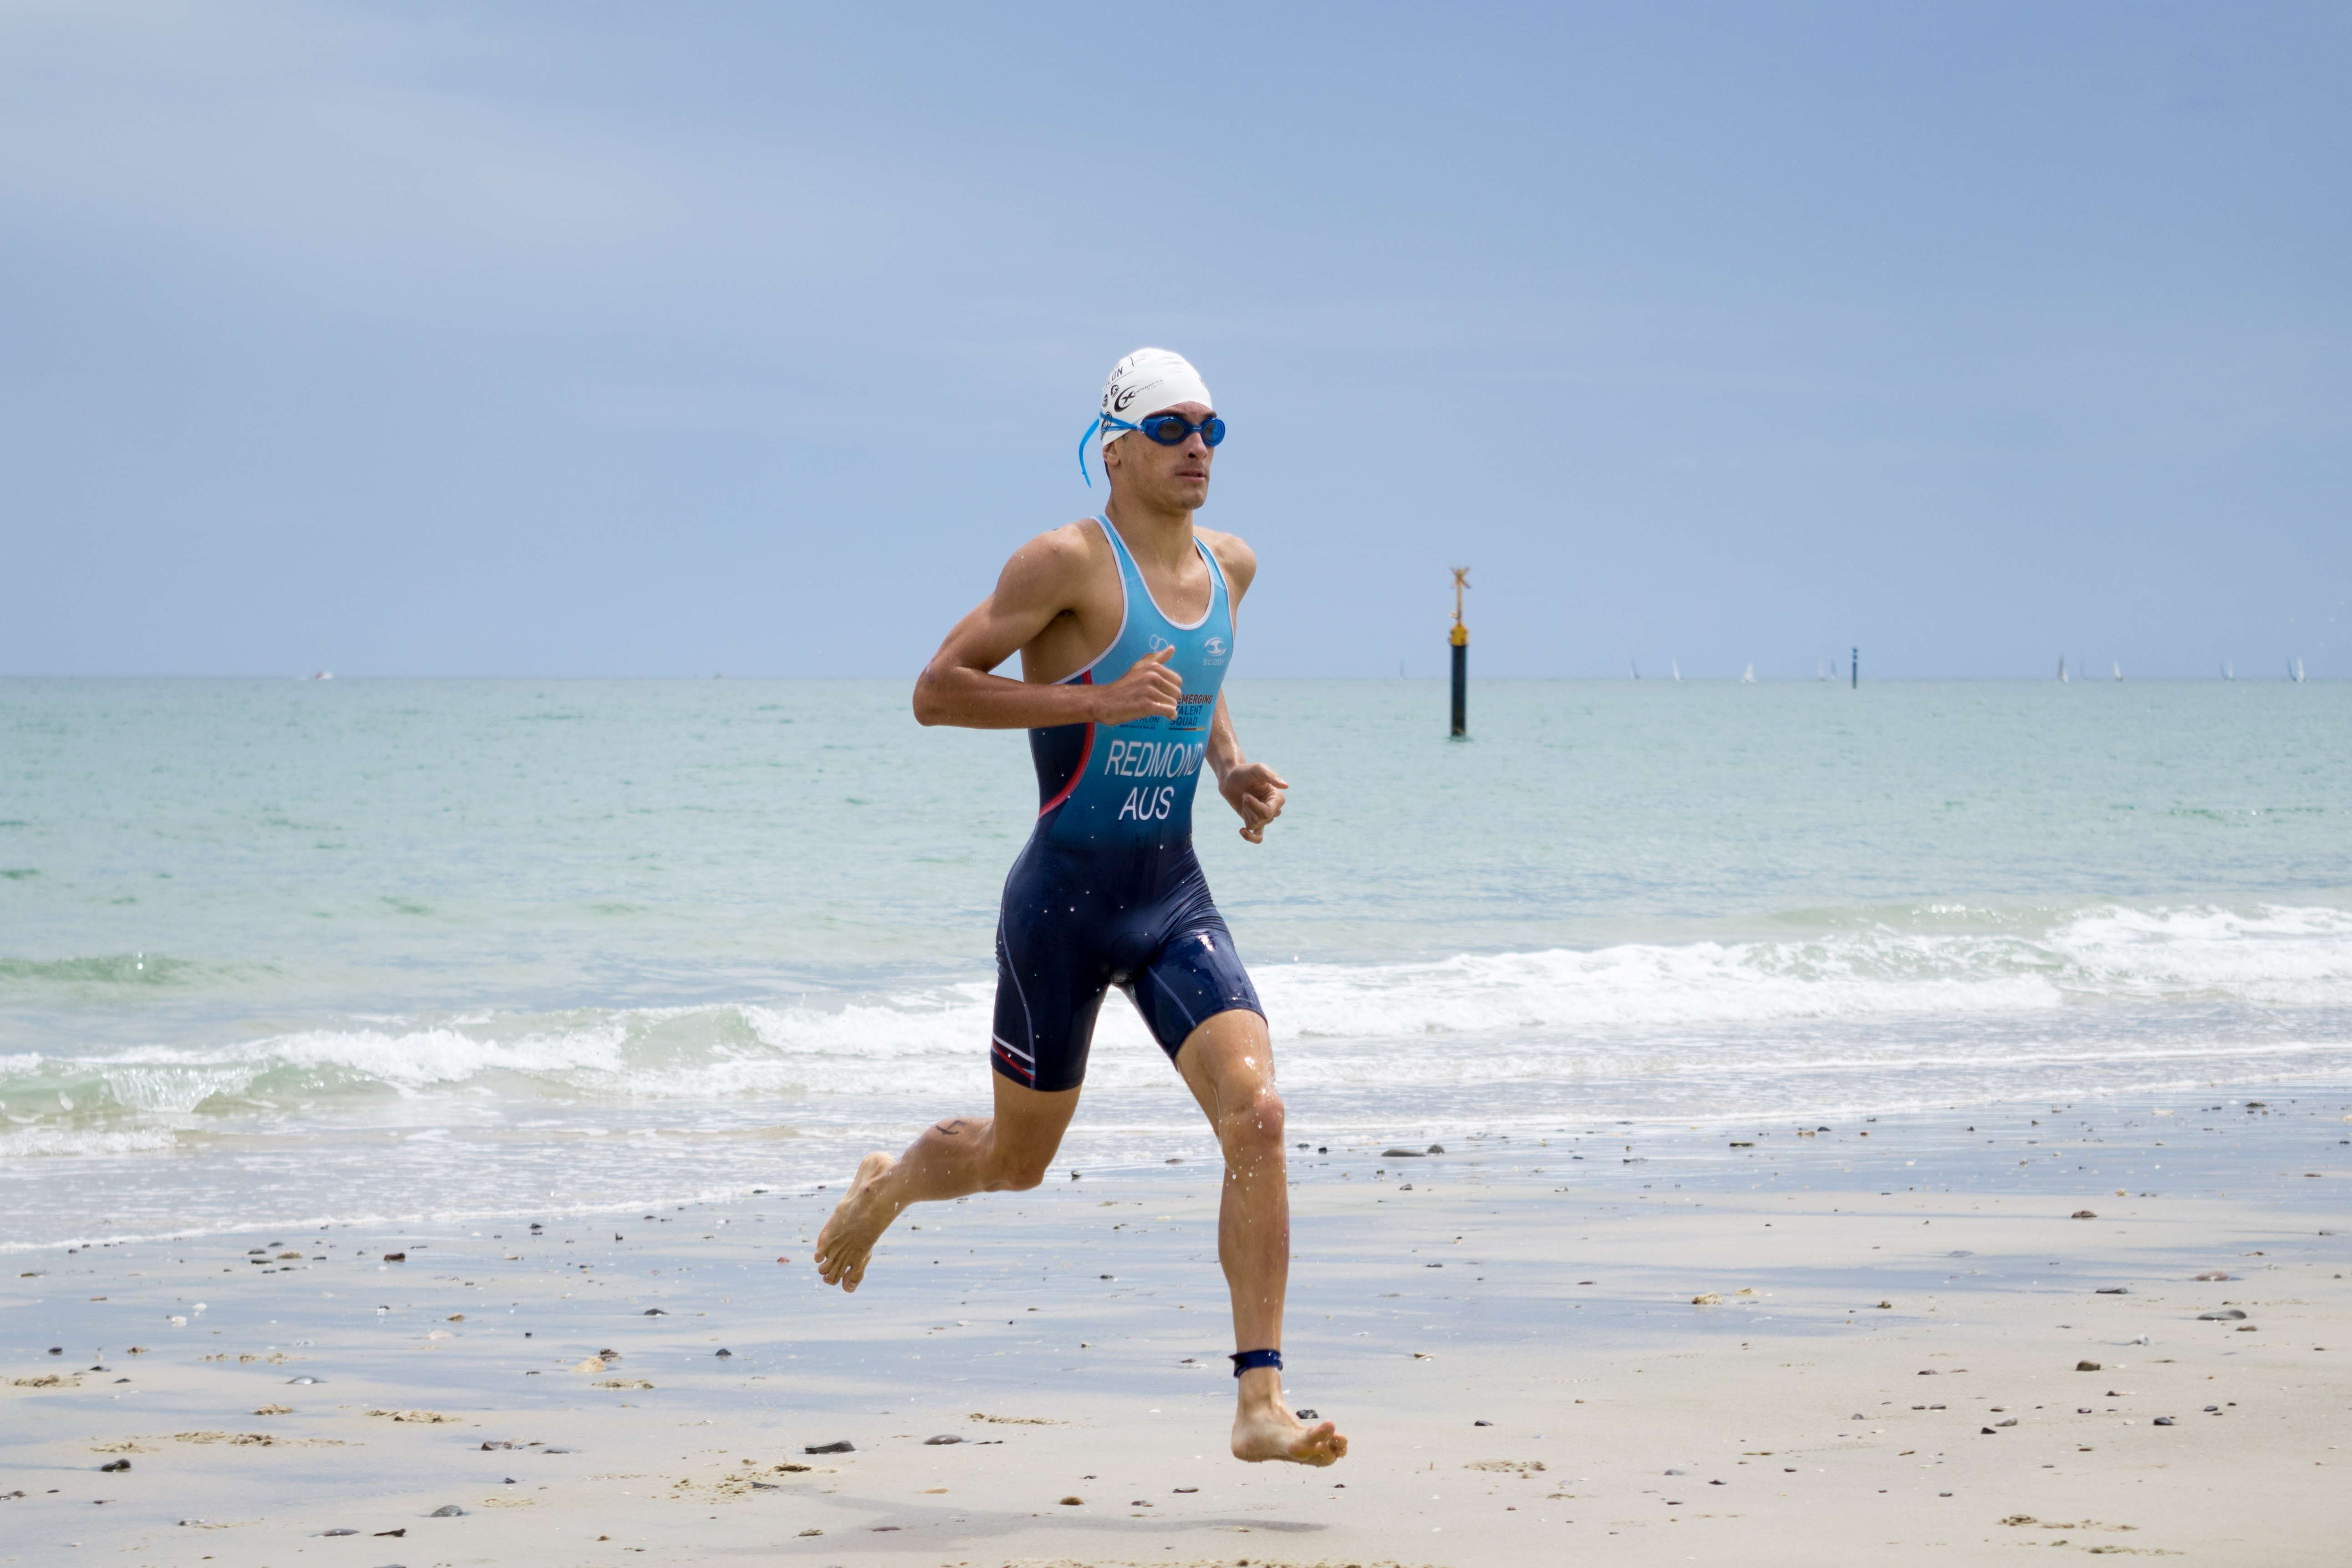 Lorcan Redmond 2017 Australian Junior Triathlon Series